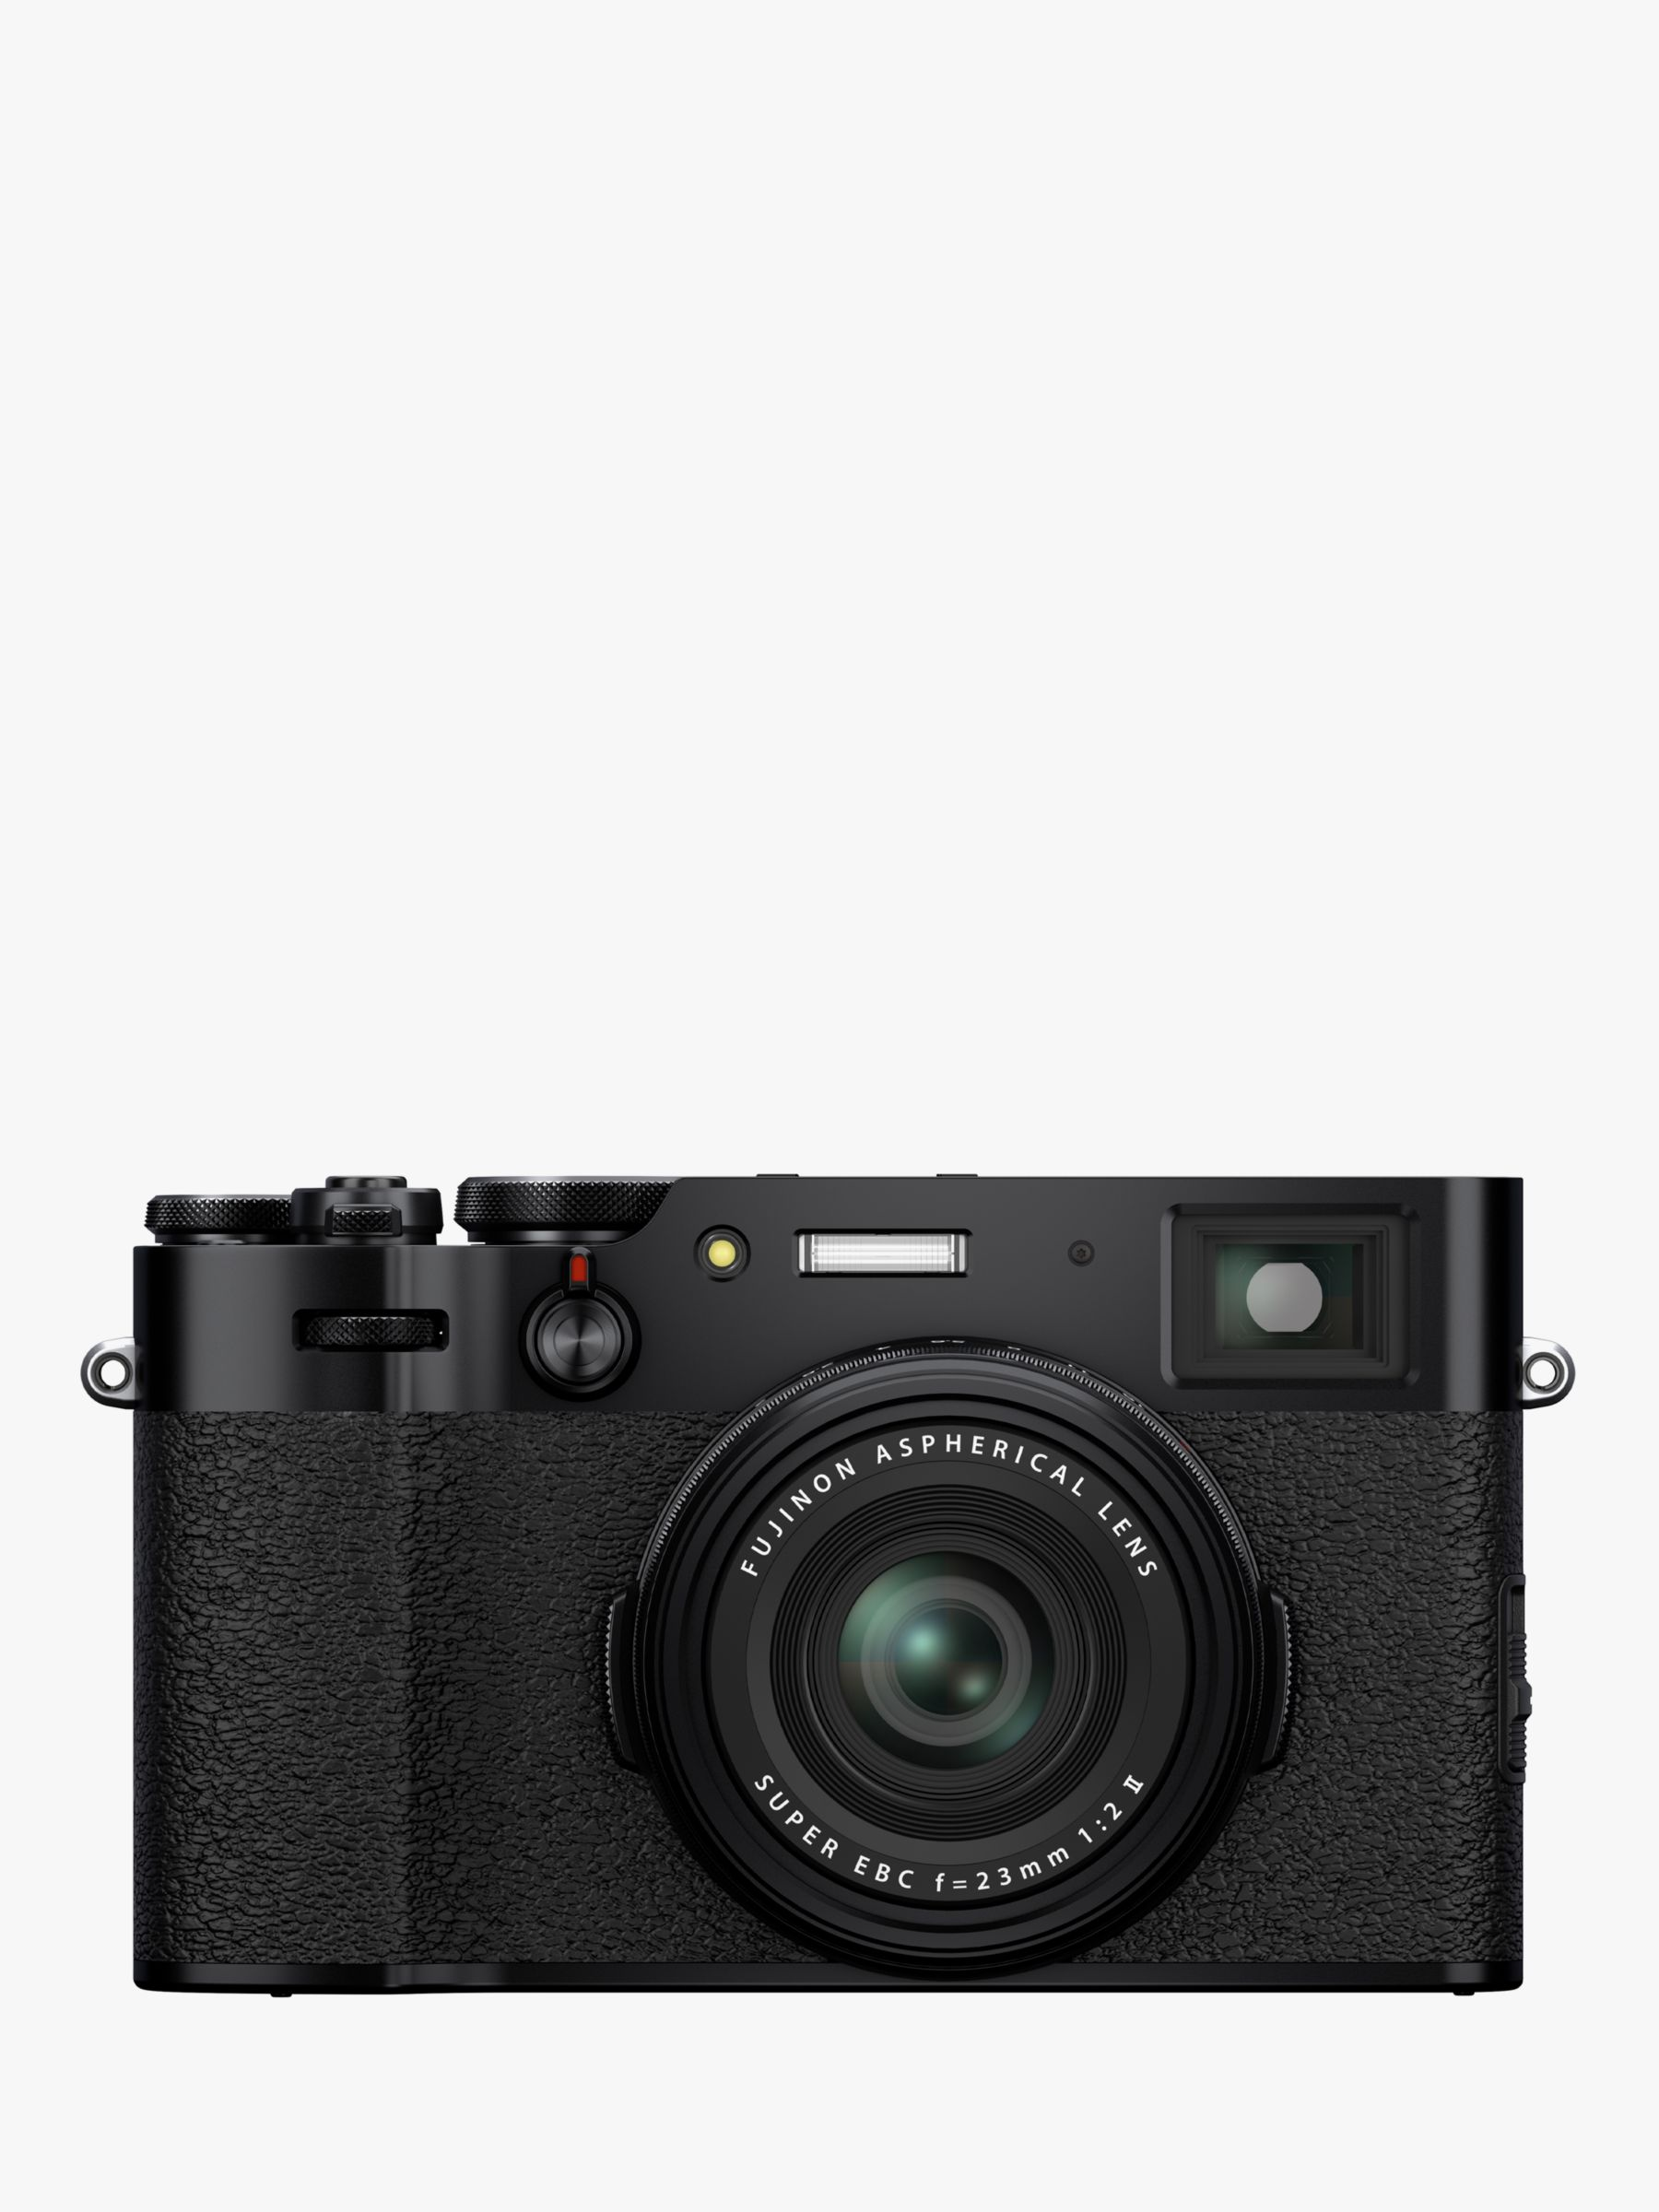 Image of Fujifilm X100V Digital Compact Camera with 23mm Lens 4K Ultra HD 261MP WiFi Bluetooth Hybrid EVFOVF 3 Tiltable Touch Screen